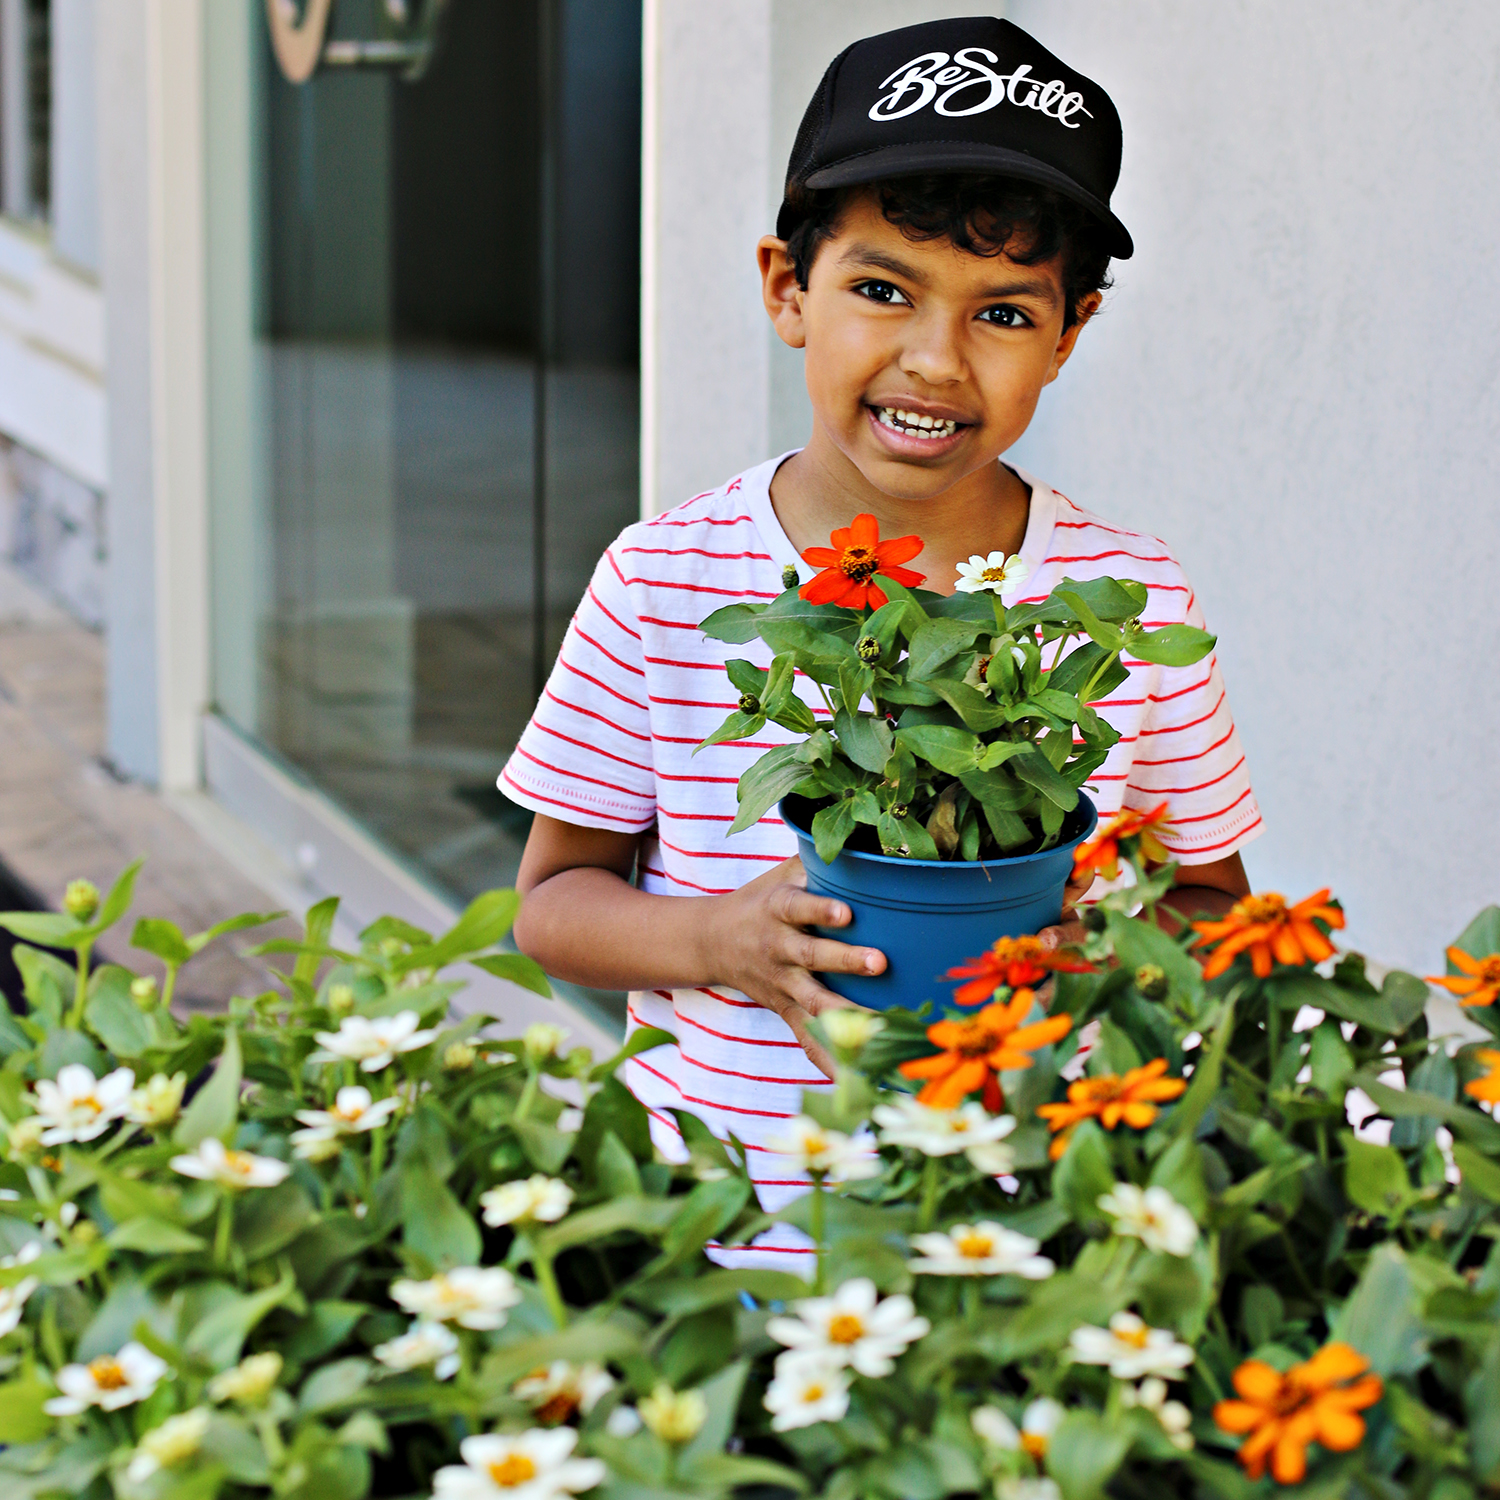 A boy stands behind a table of potted flowers, holding a pot of flowers. It's just one of the easy ways to make every day Earth Day with kids. He's spending time outdoors.